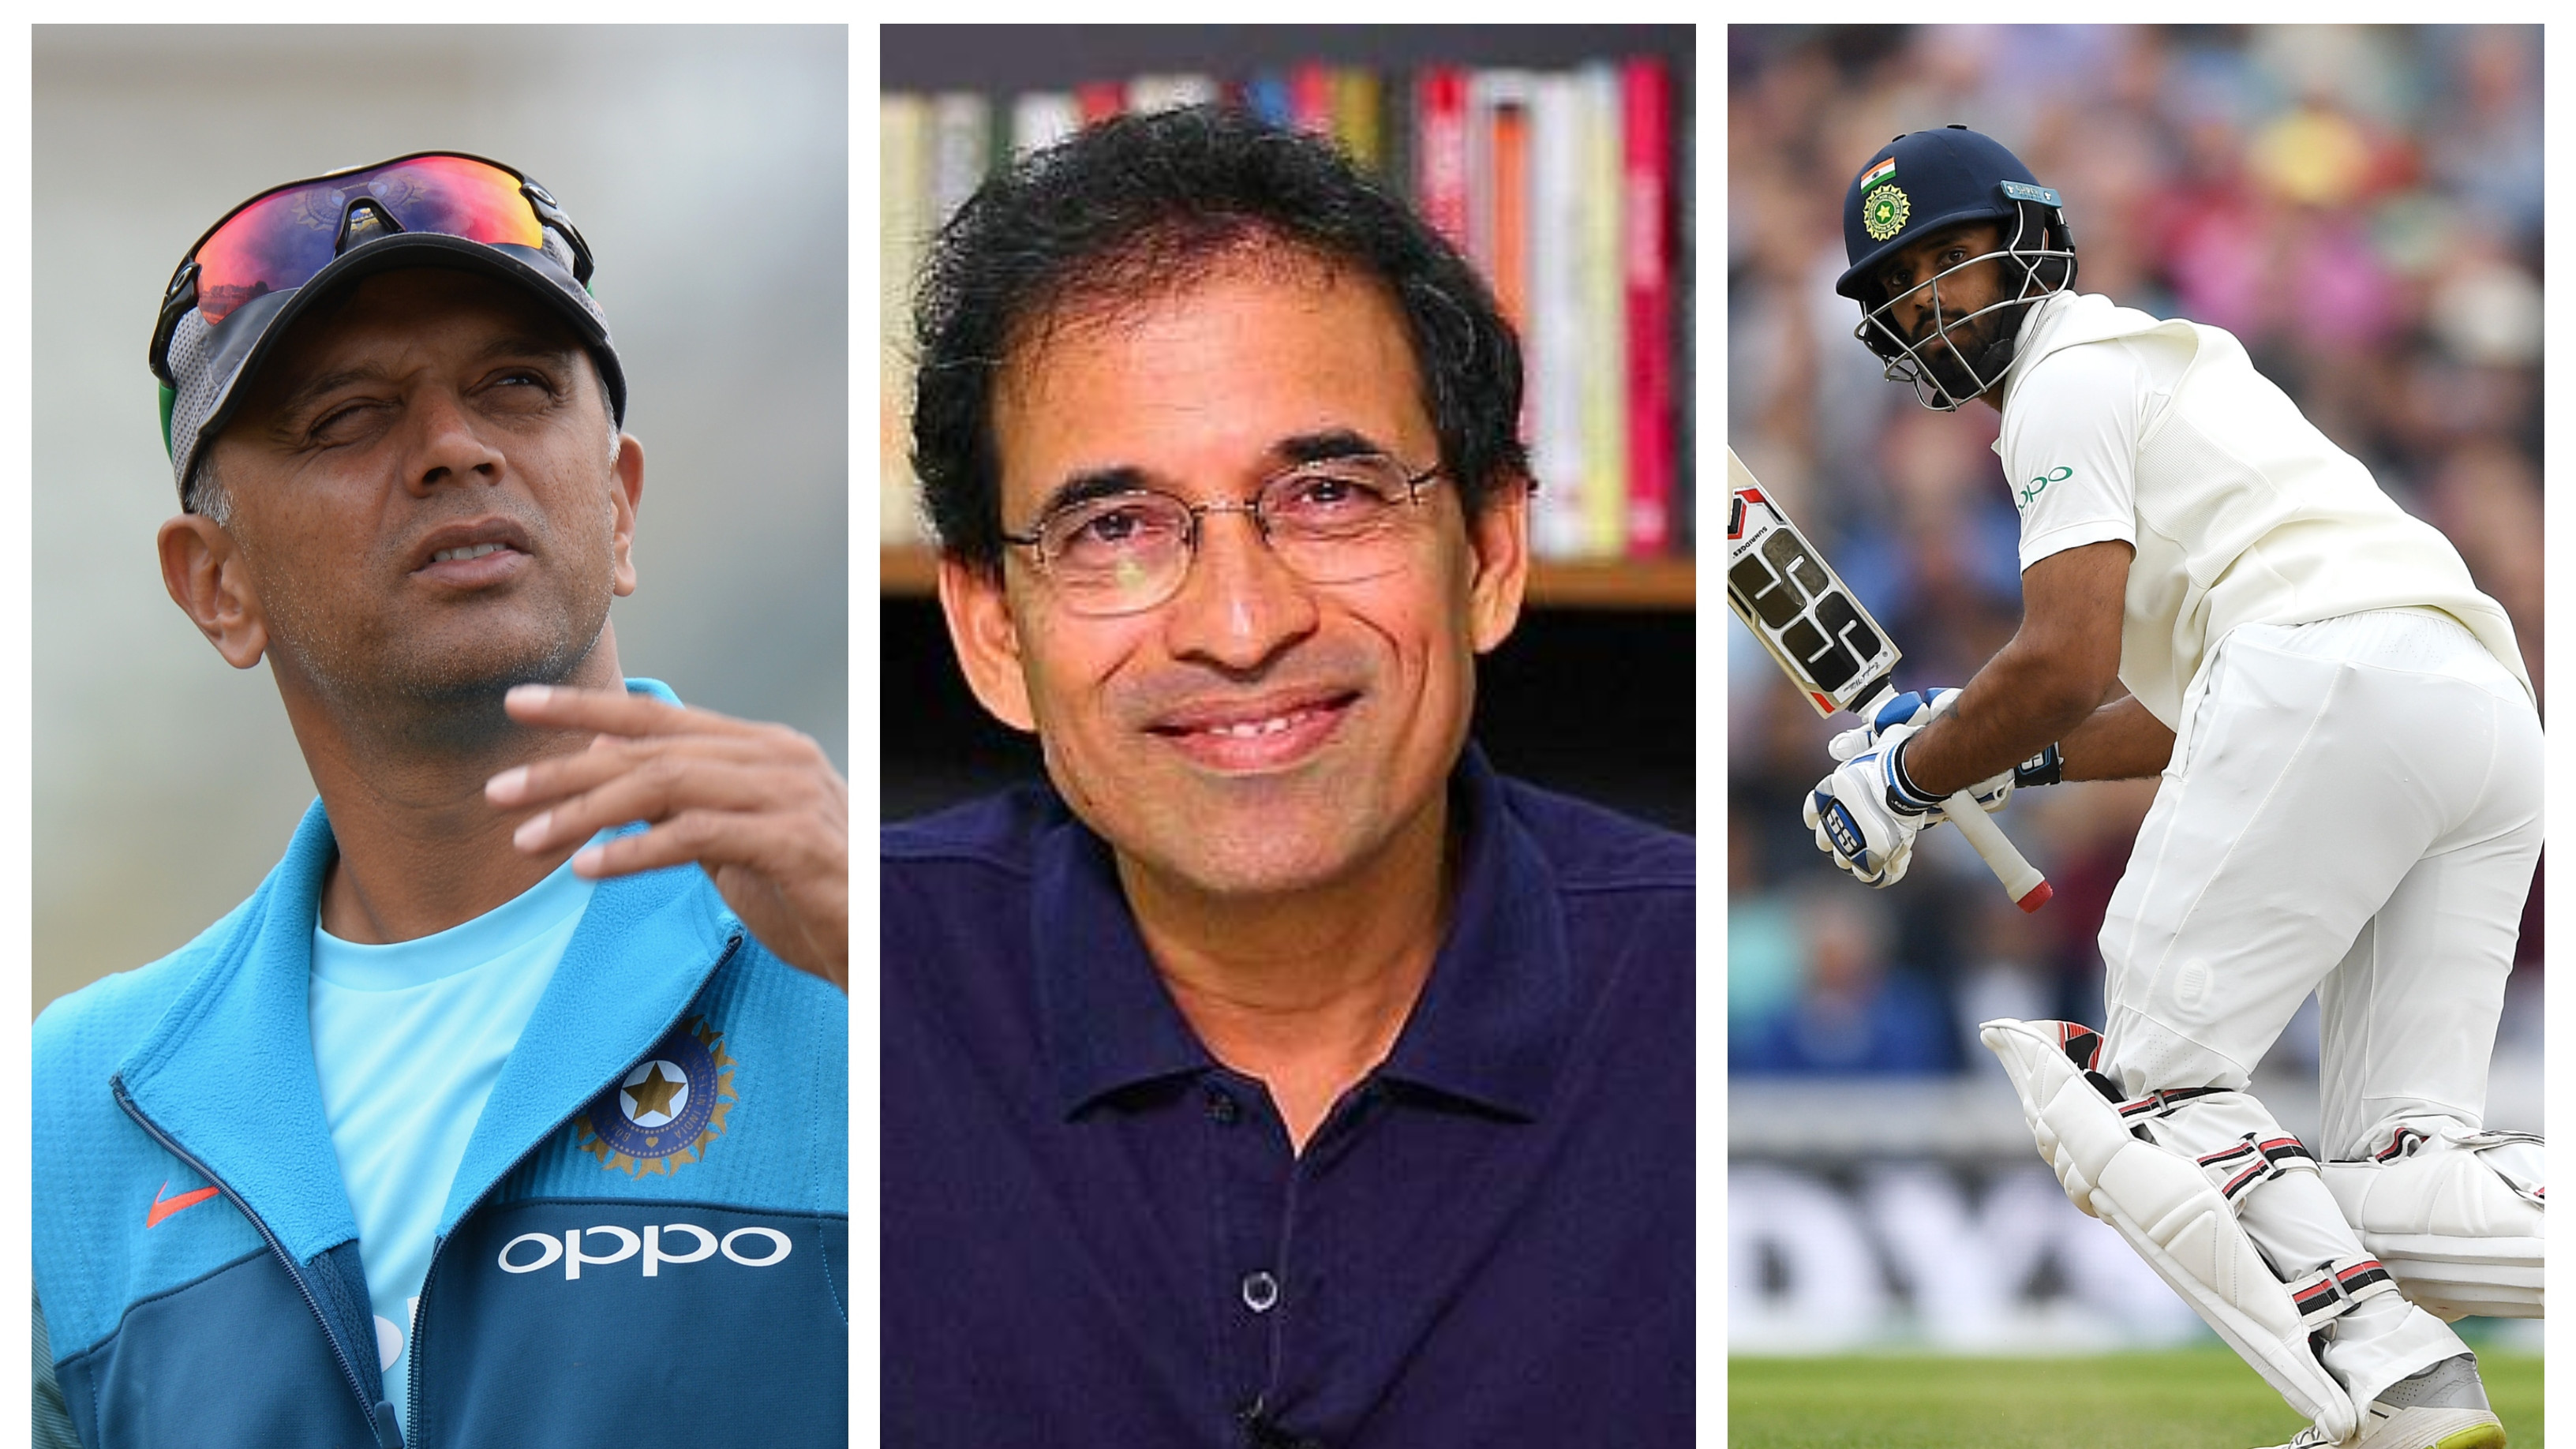 ENG vs IND 2018: Wonderful to read how Hanuma Vihari called Rahul Dravid before debut, says Harsha Bhogle